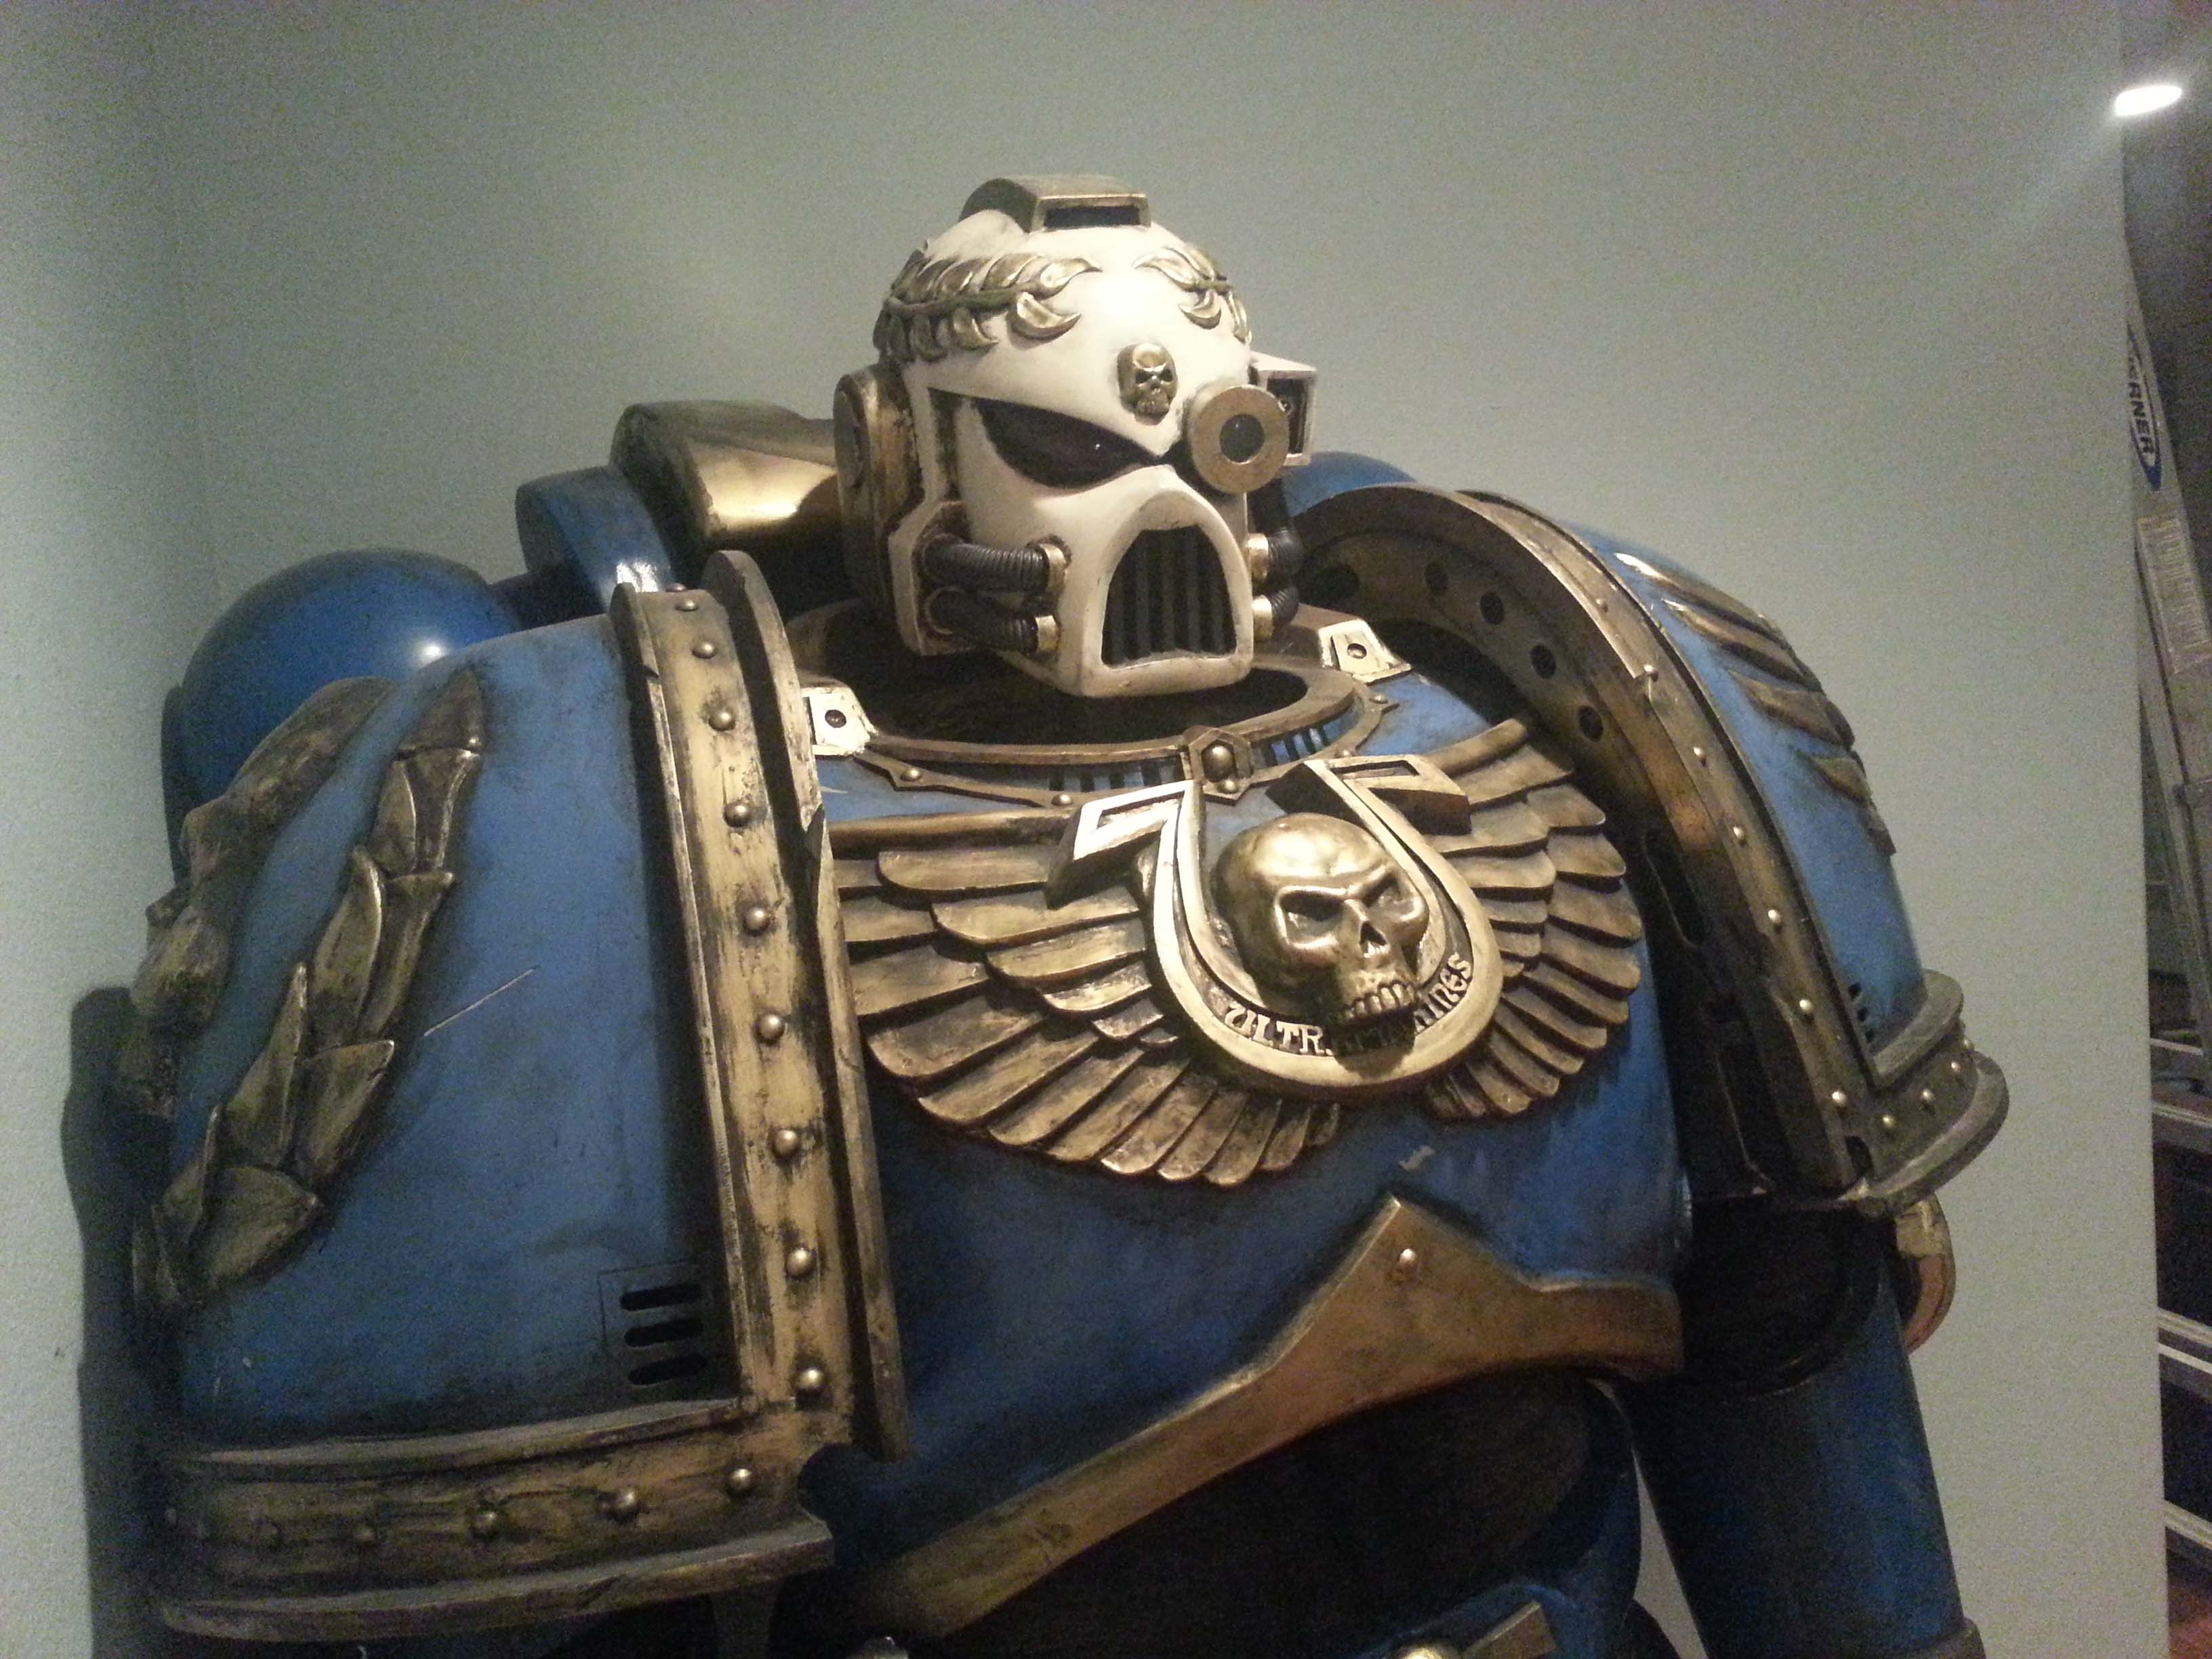 Captain Titus of the Ultramarines